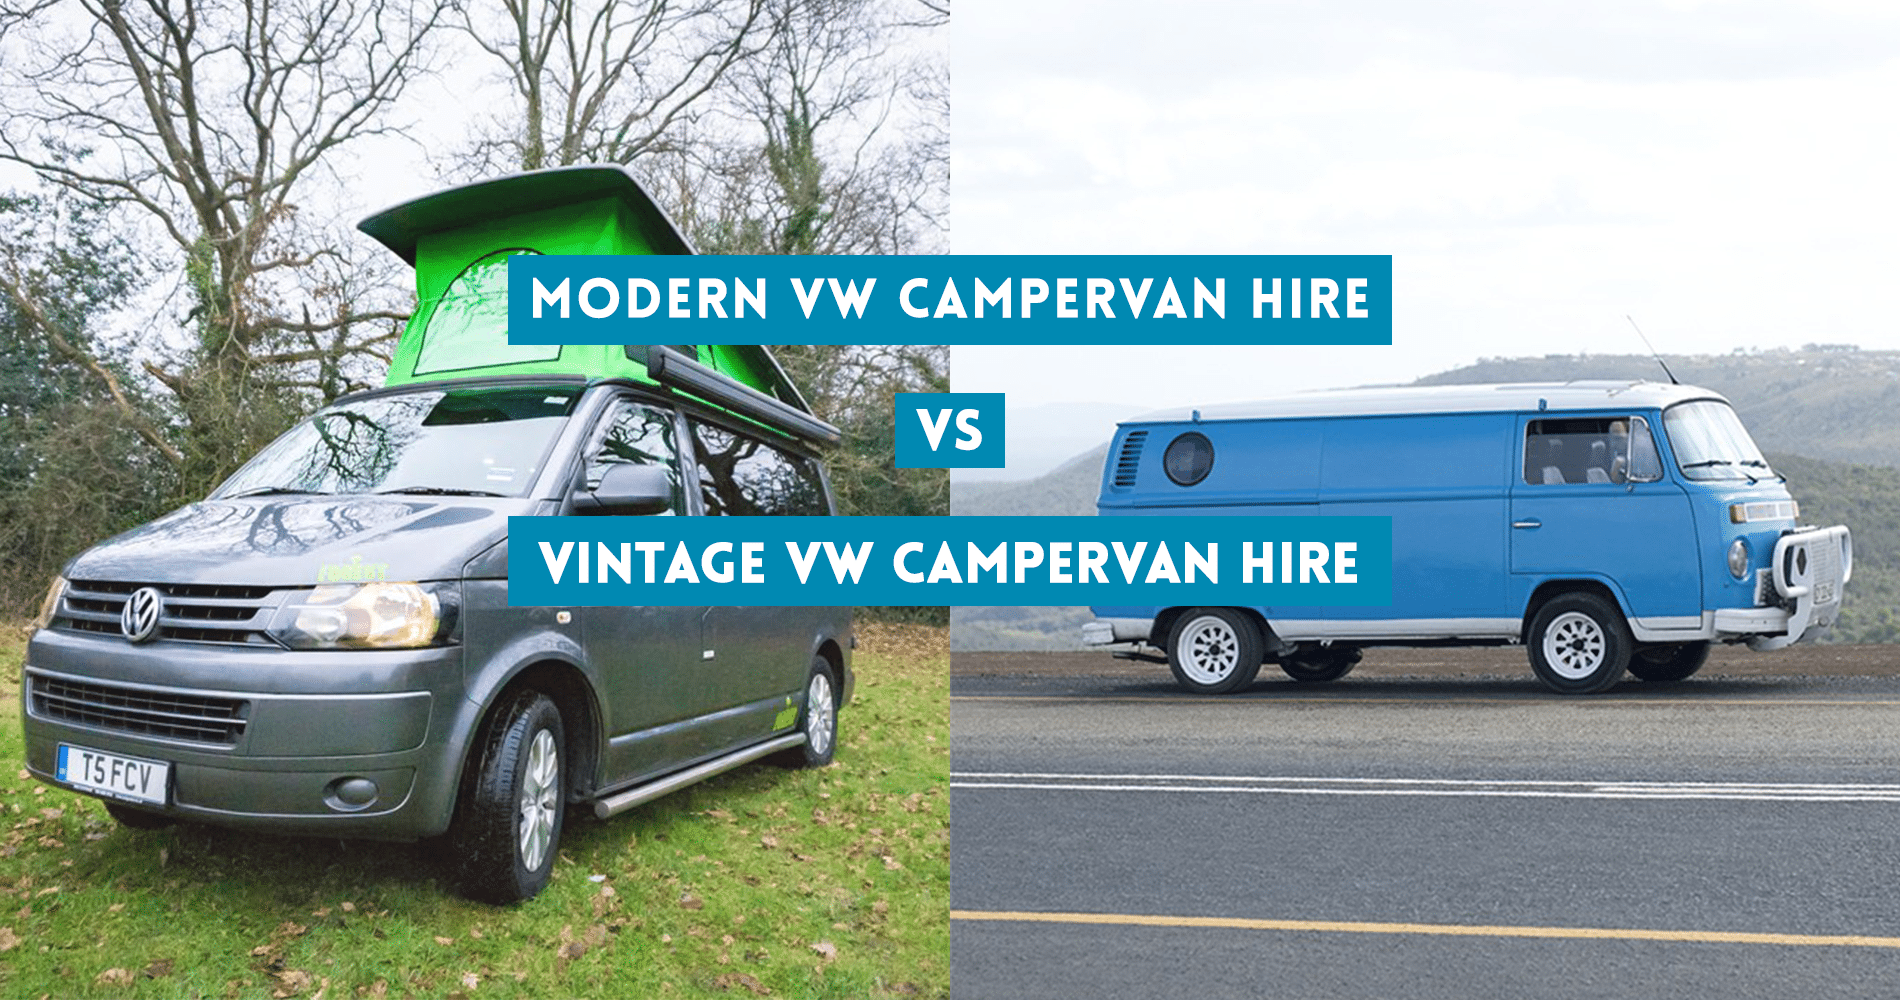 Modern Vw Campervan Hire V2